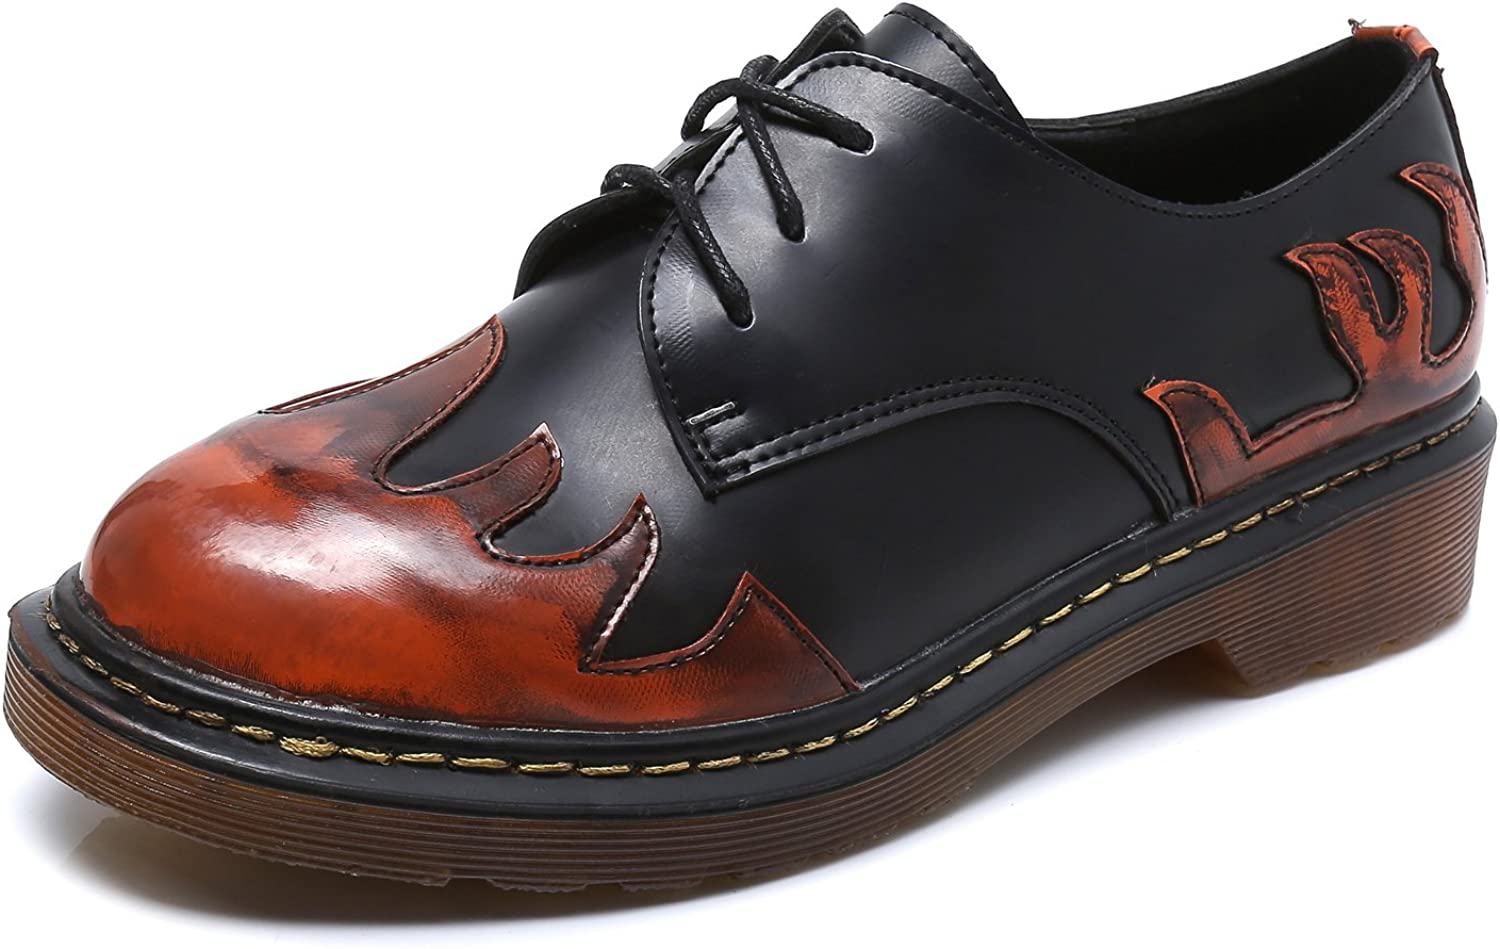 Smilun Lady's Classic Lace-Up shoes Red Flames Round Toe